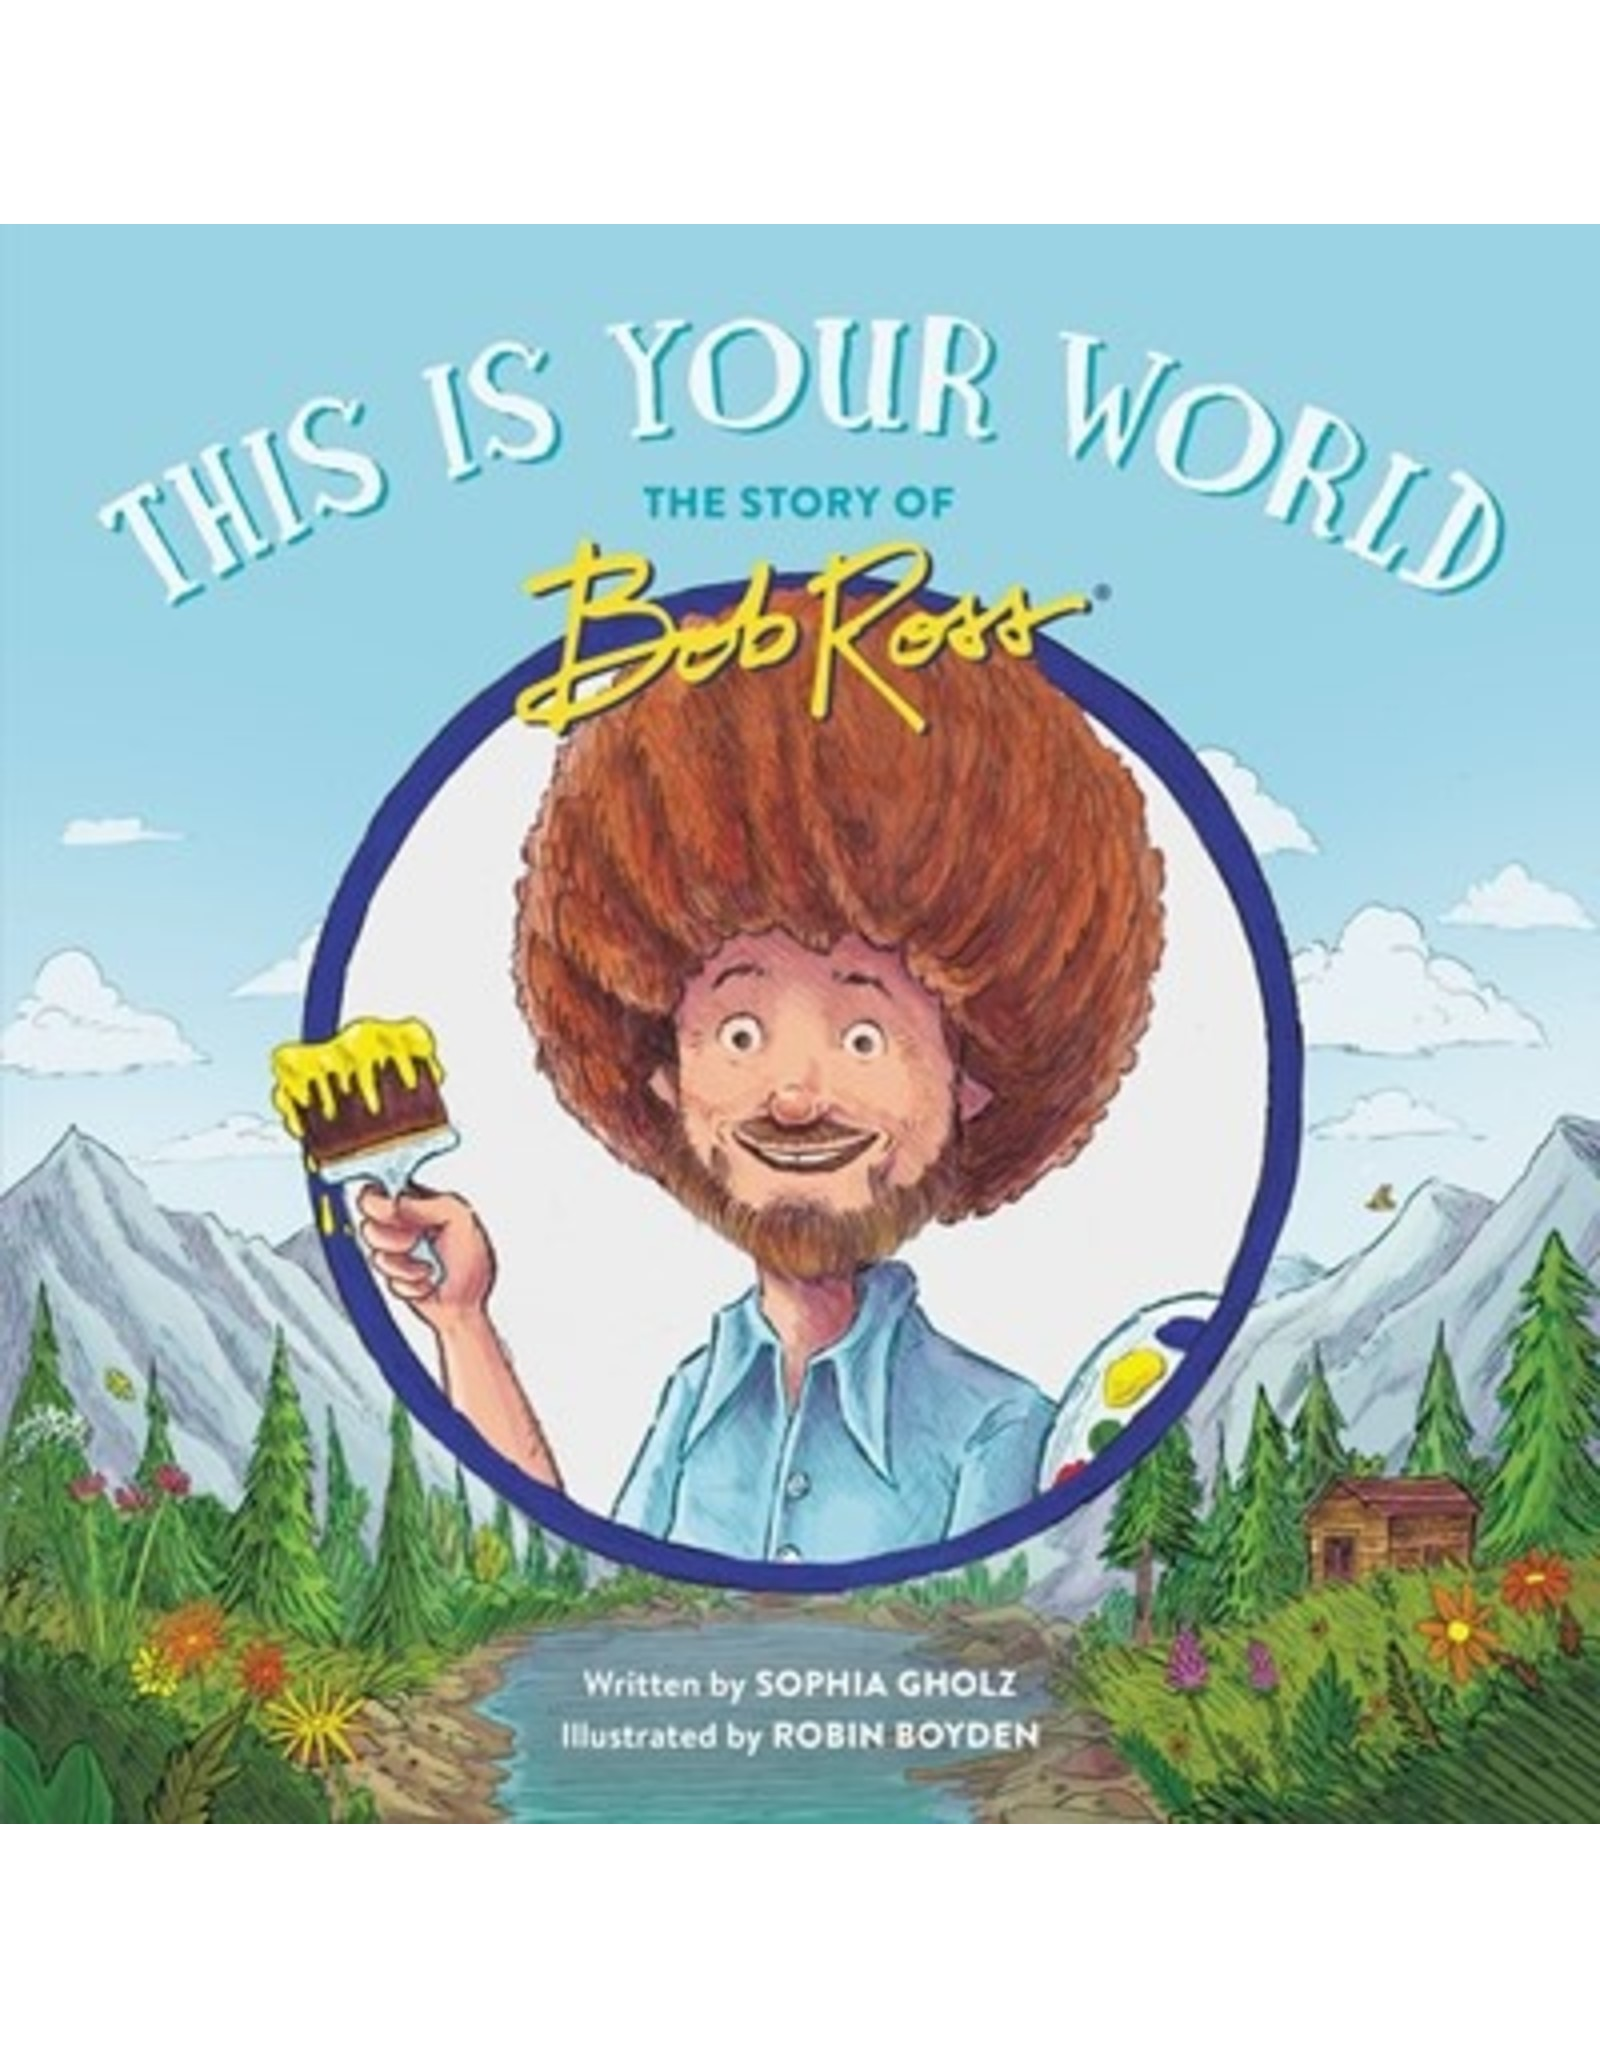 Books This is Your World : The Story of Bob Ross written by Sophia Ghoz & Illustrated by Robin Boyden